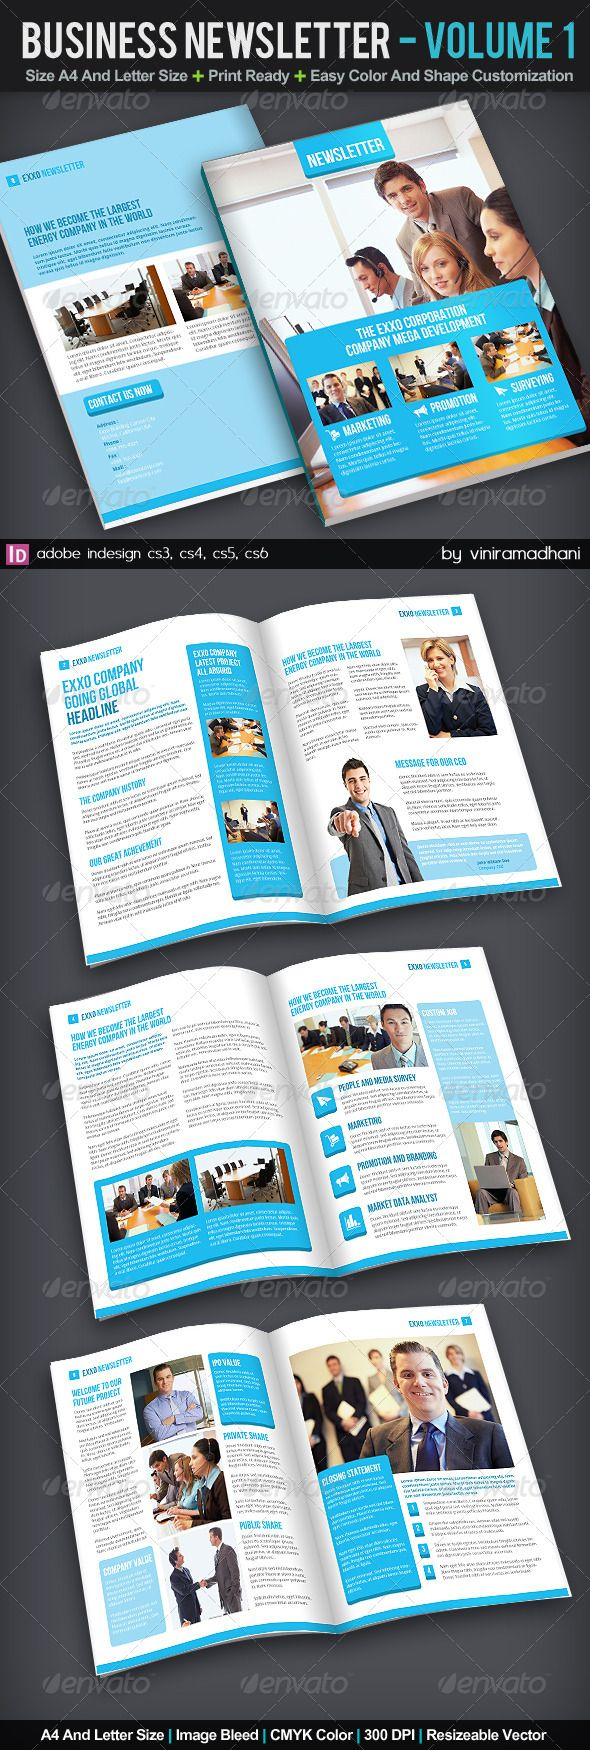 Business Newsletter | Volume 1 - Newsletters Print Templates Download here : https://graphicriver.net/item/business-newsletter-volume-1/6098666?s_rank=306&ref=Al-fatih